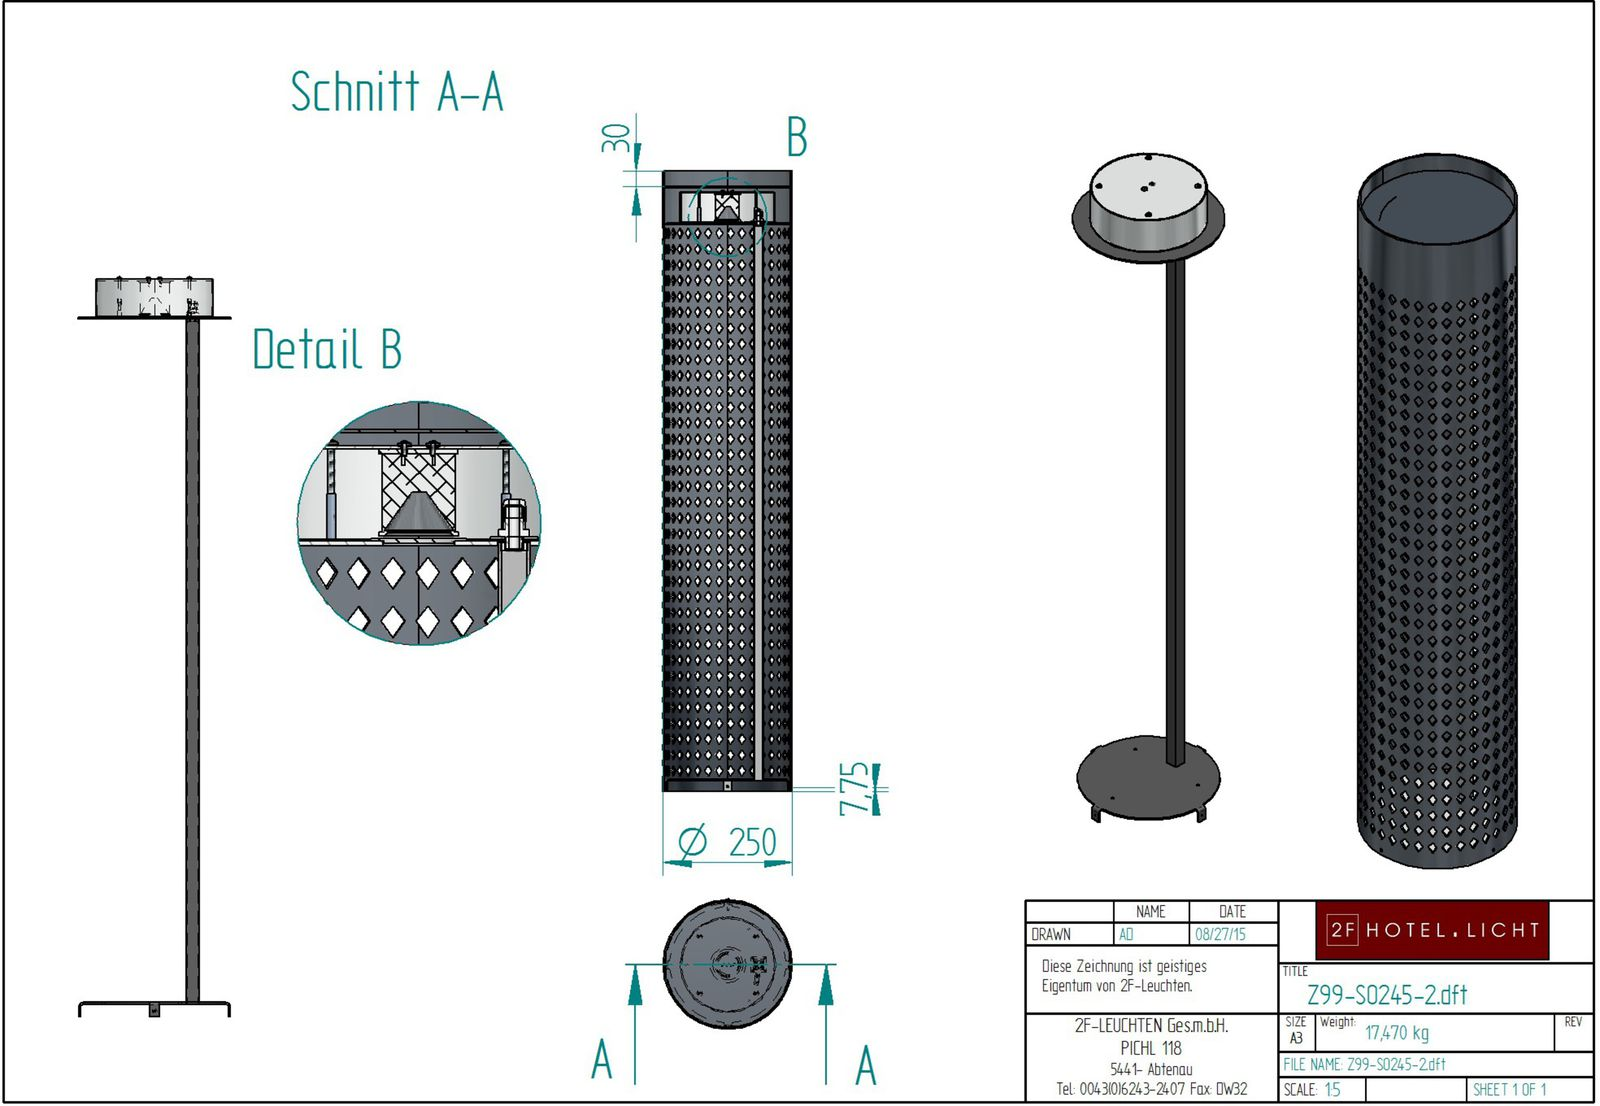 floor lamp, L:Ø250mm, H:1400mm, surface: metal anthrazit, techn. Data: LED, 10W LED 2700K DRI90+, switch: not dimmable